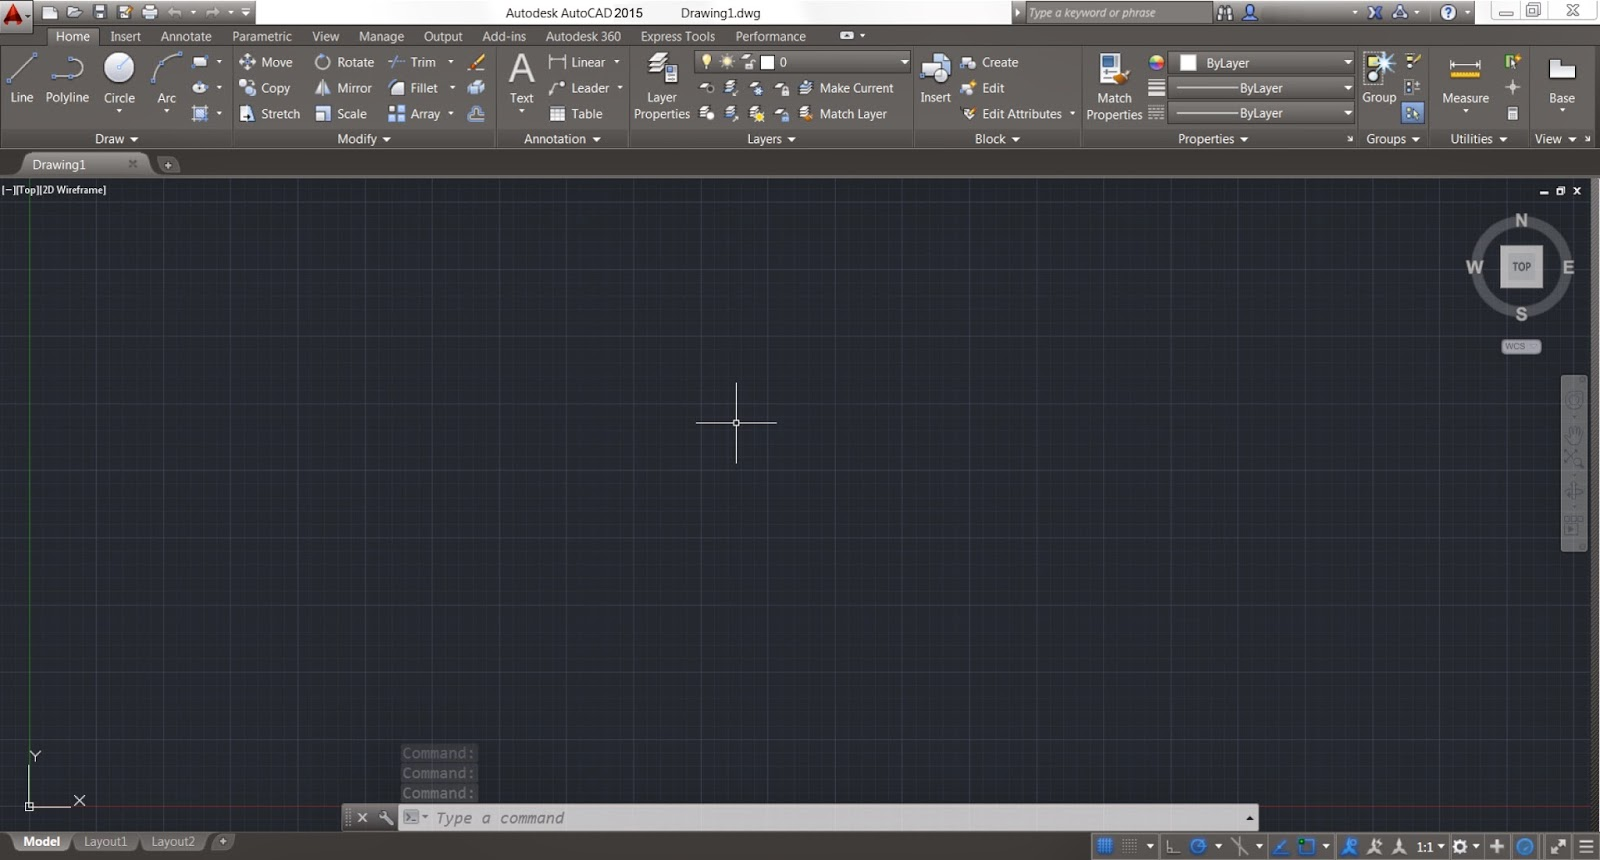 AutoCad Crack for Windows 10 Full Free Download